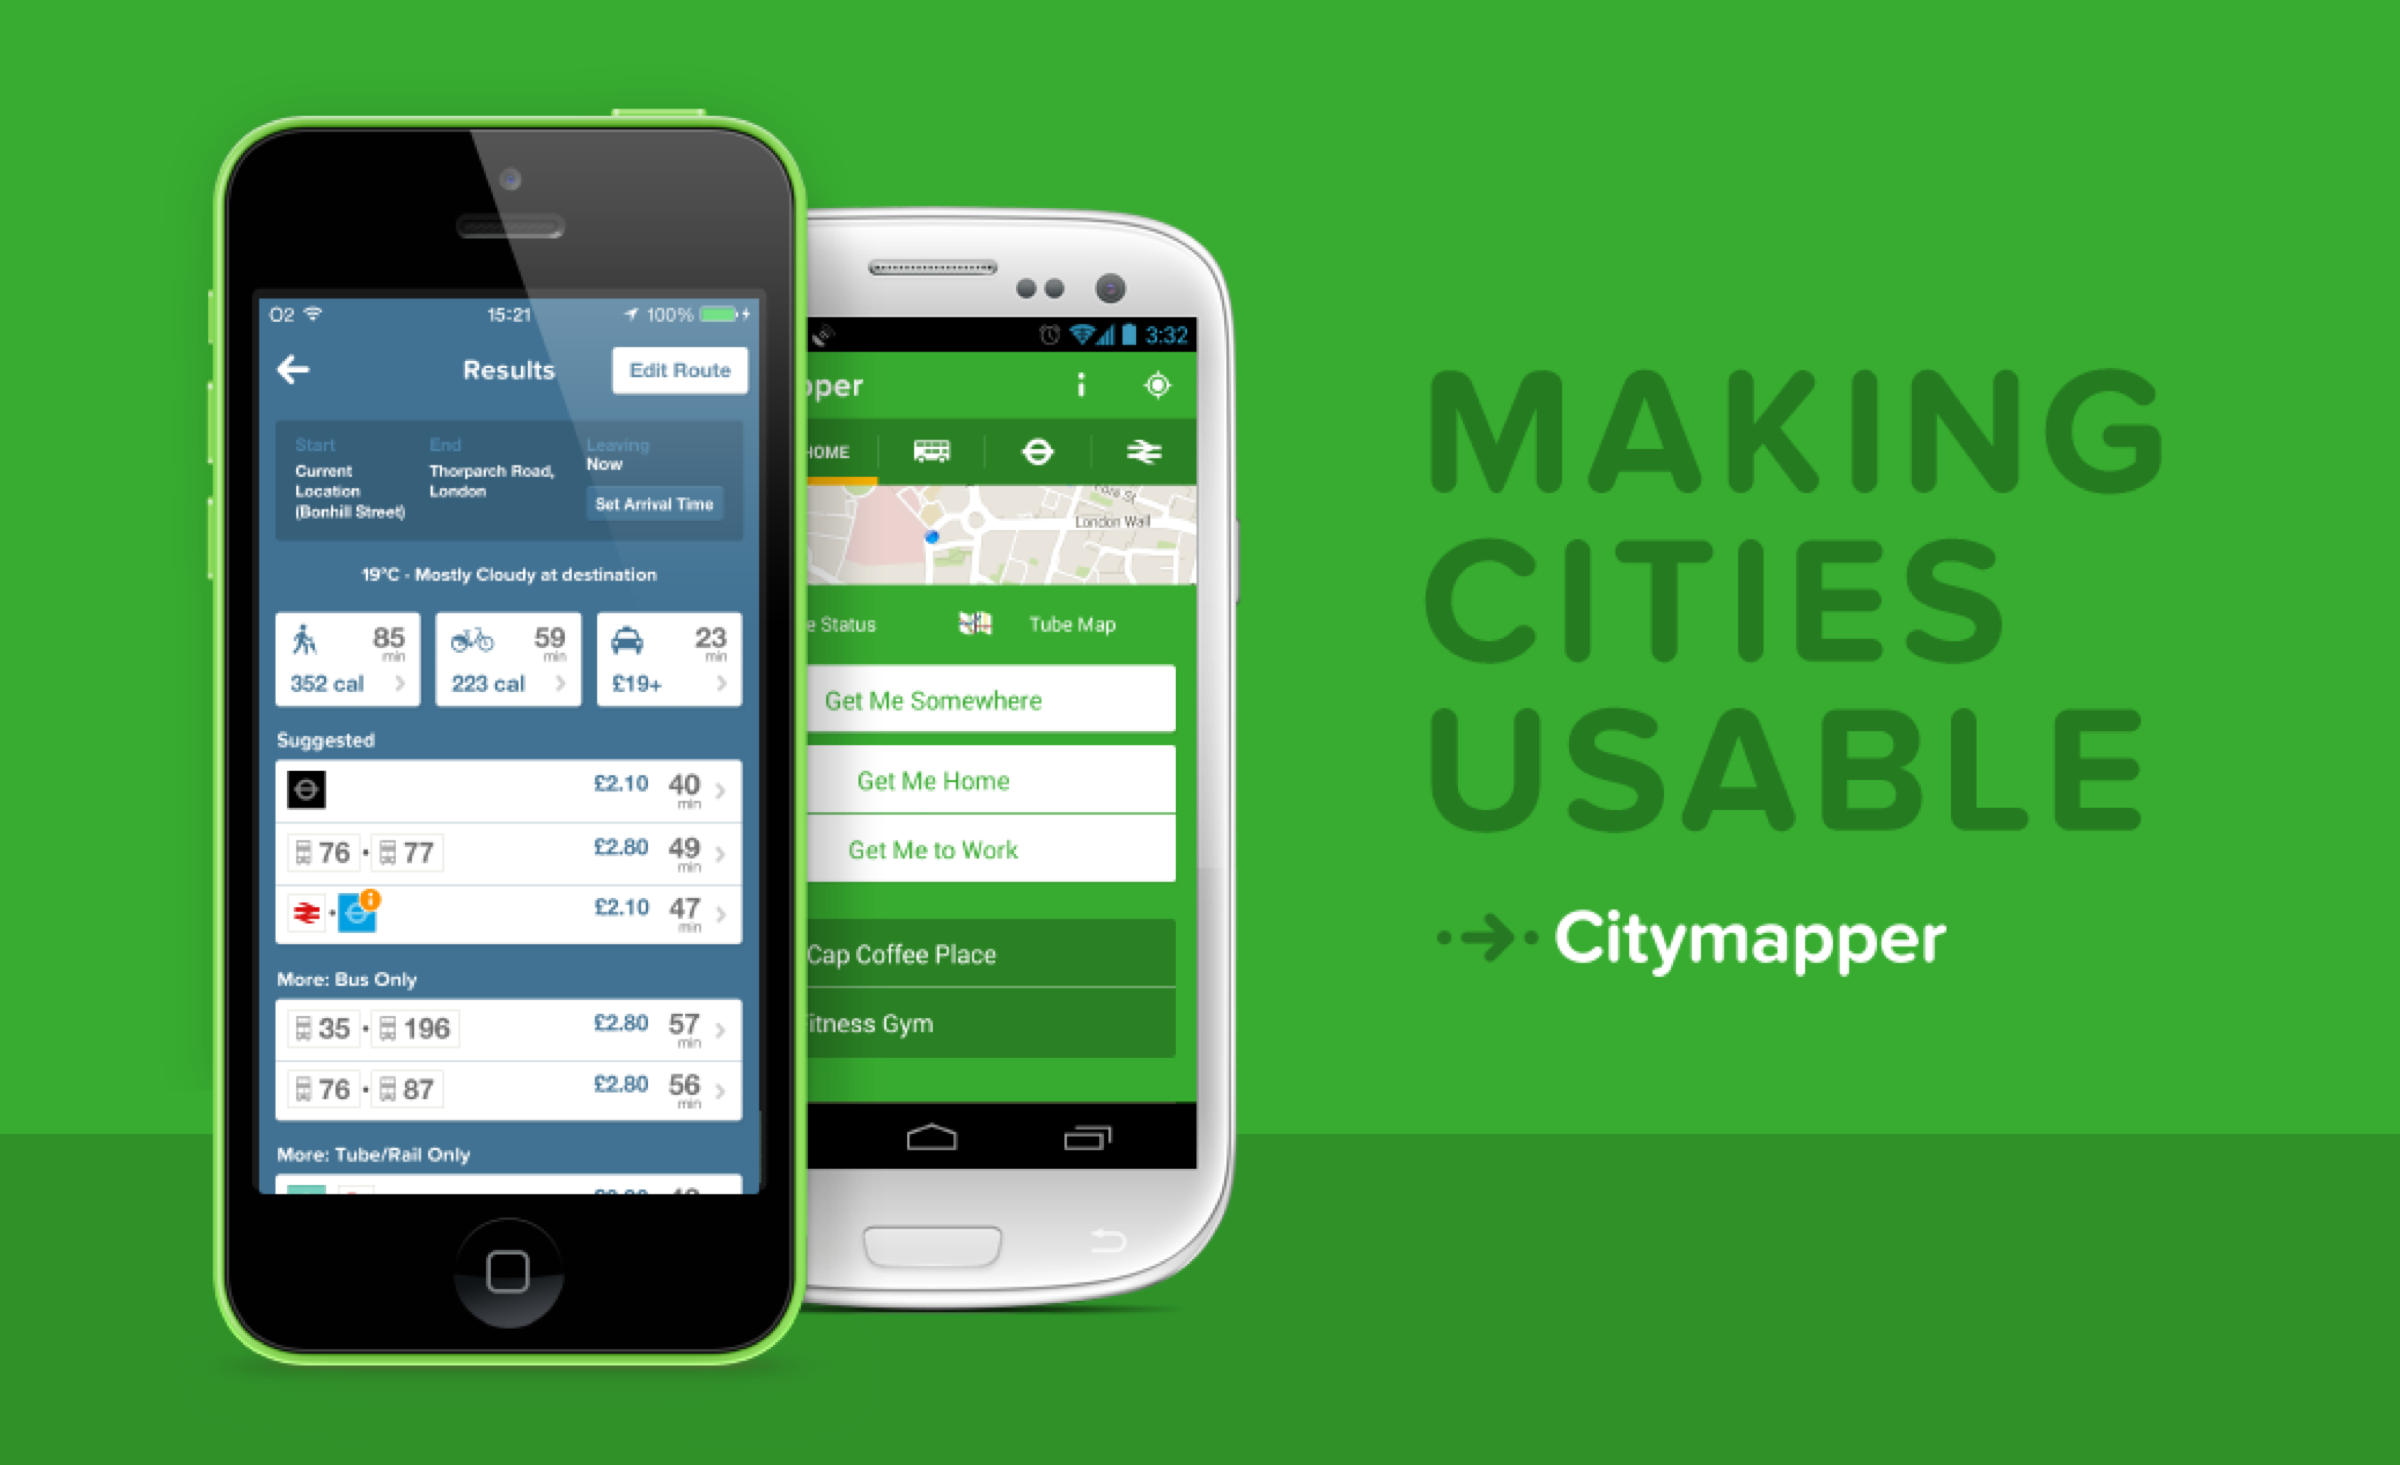 Citymapper's latest update brings handy sharing options, improvements and more